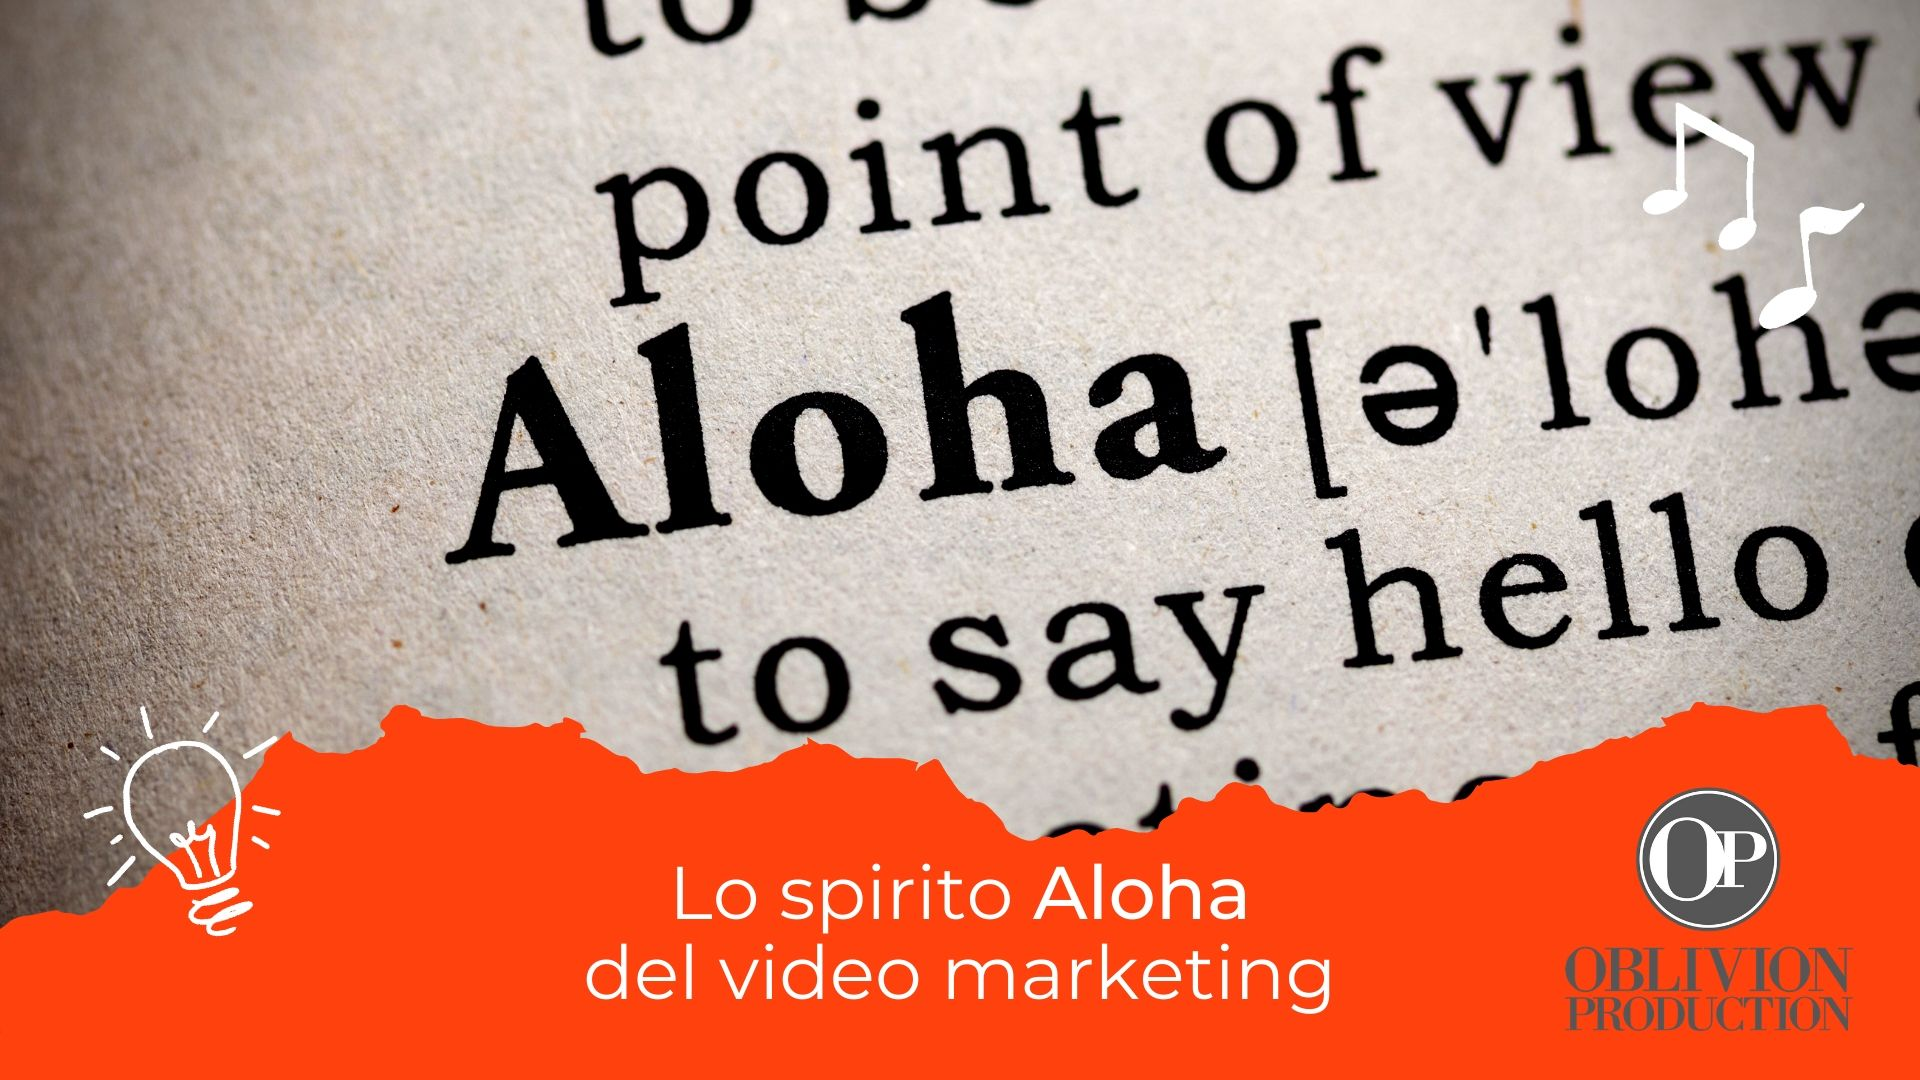 Lo spirito Aloha del video marketing